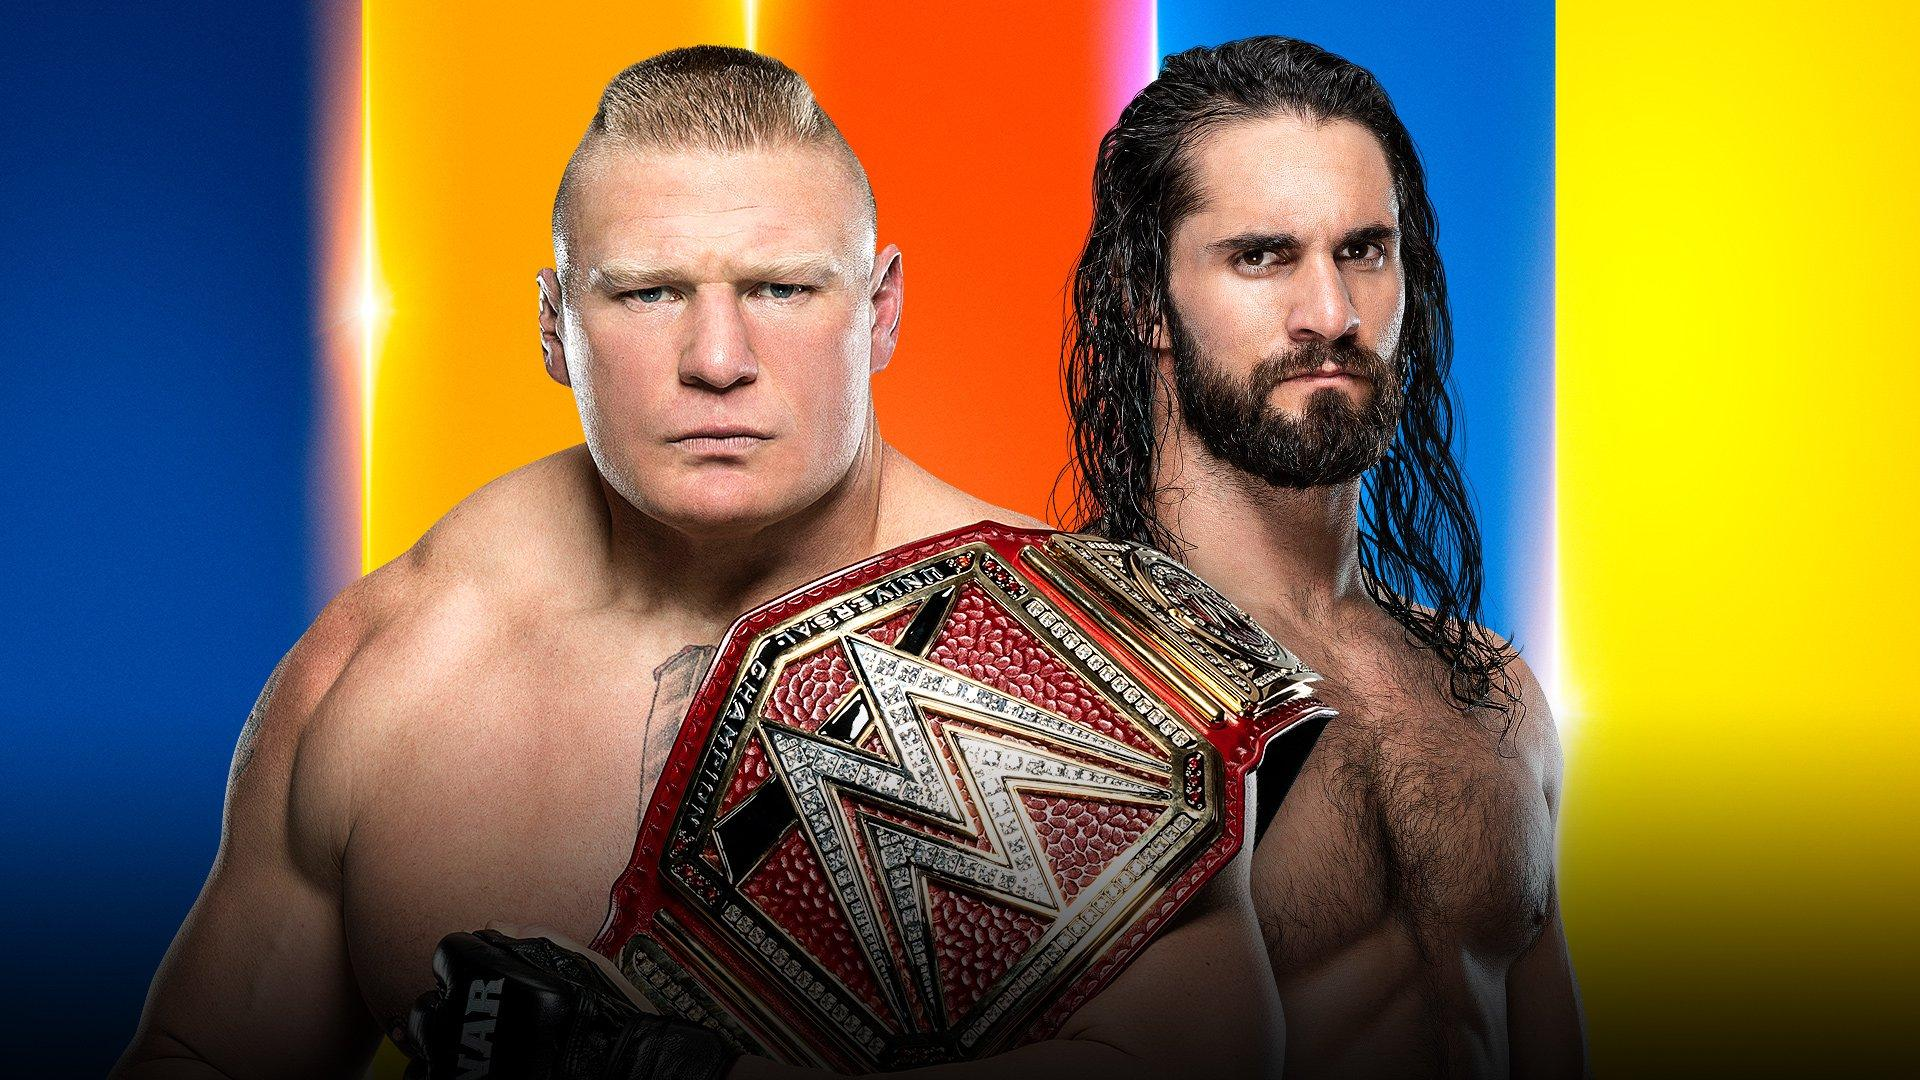 WWE SummerSlam matches, predictions for the entire 2019 card